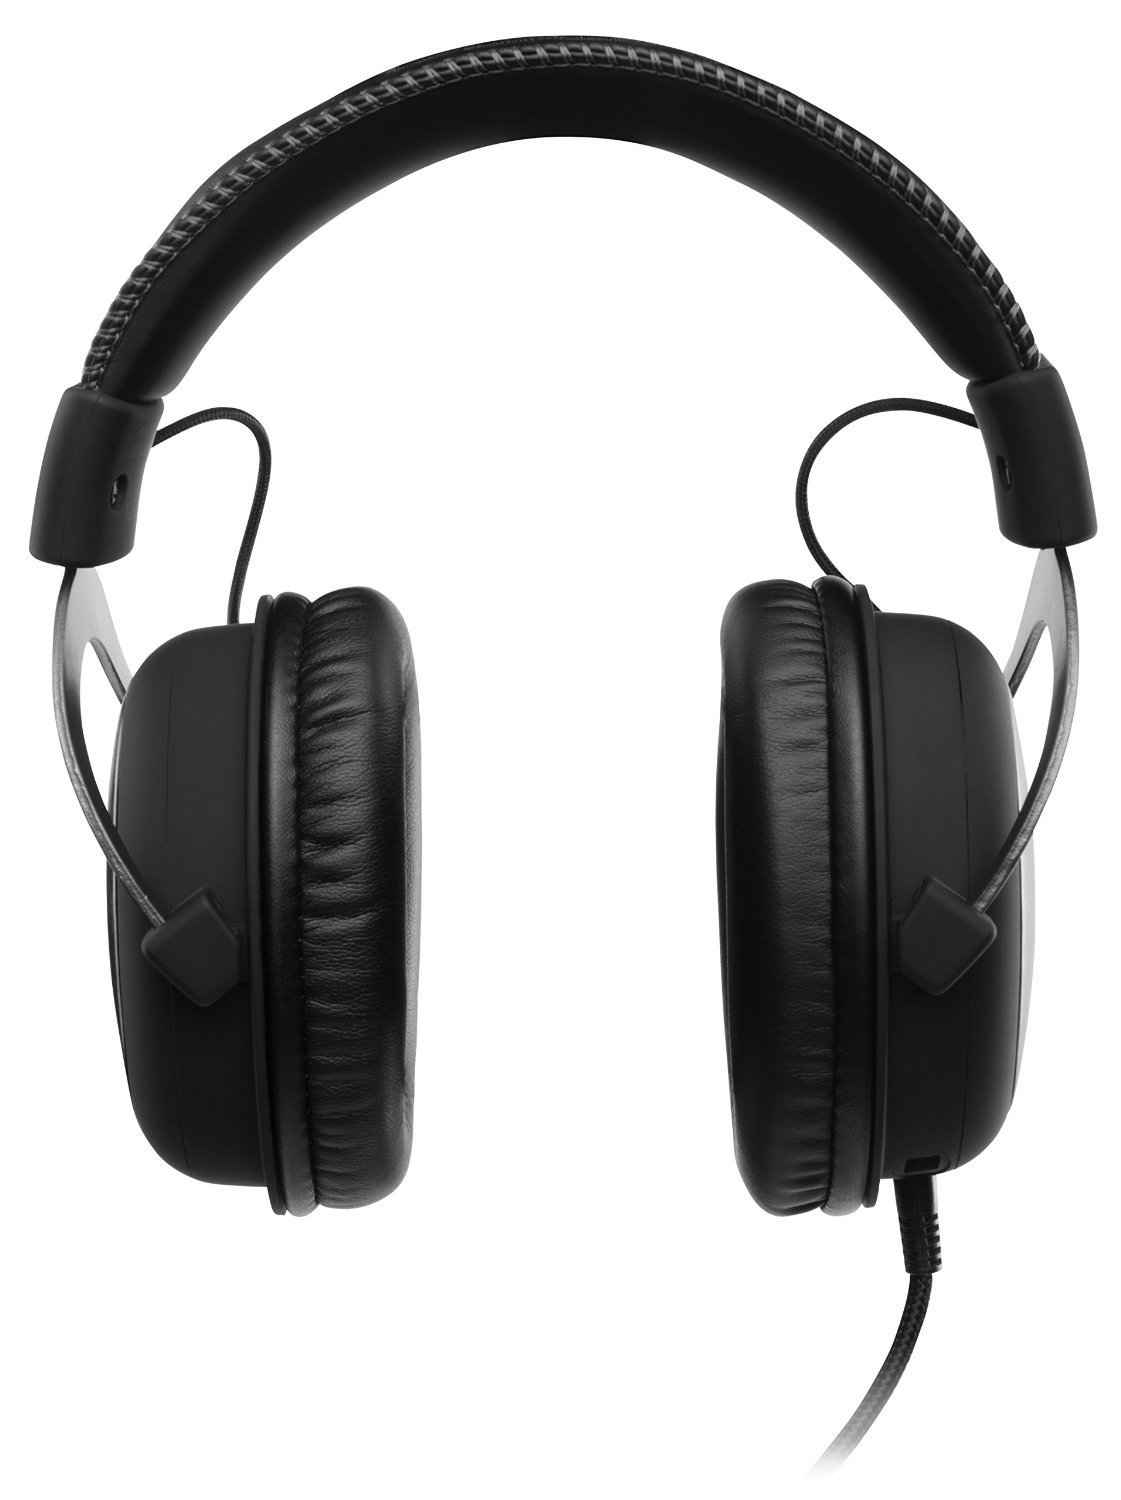 HyperX Cloud II Pro Gaming Headset (Gun Metal) screenshot